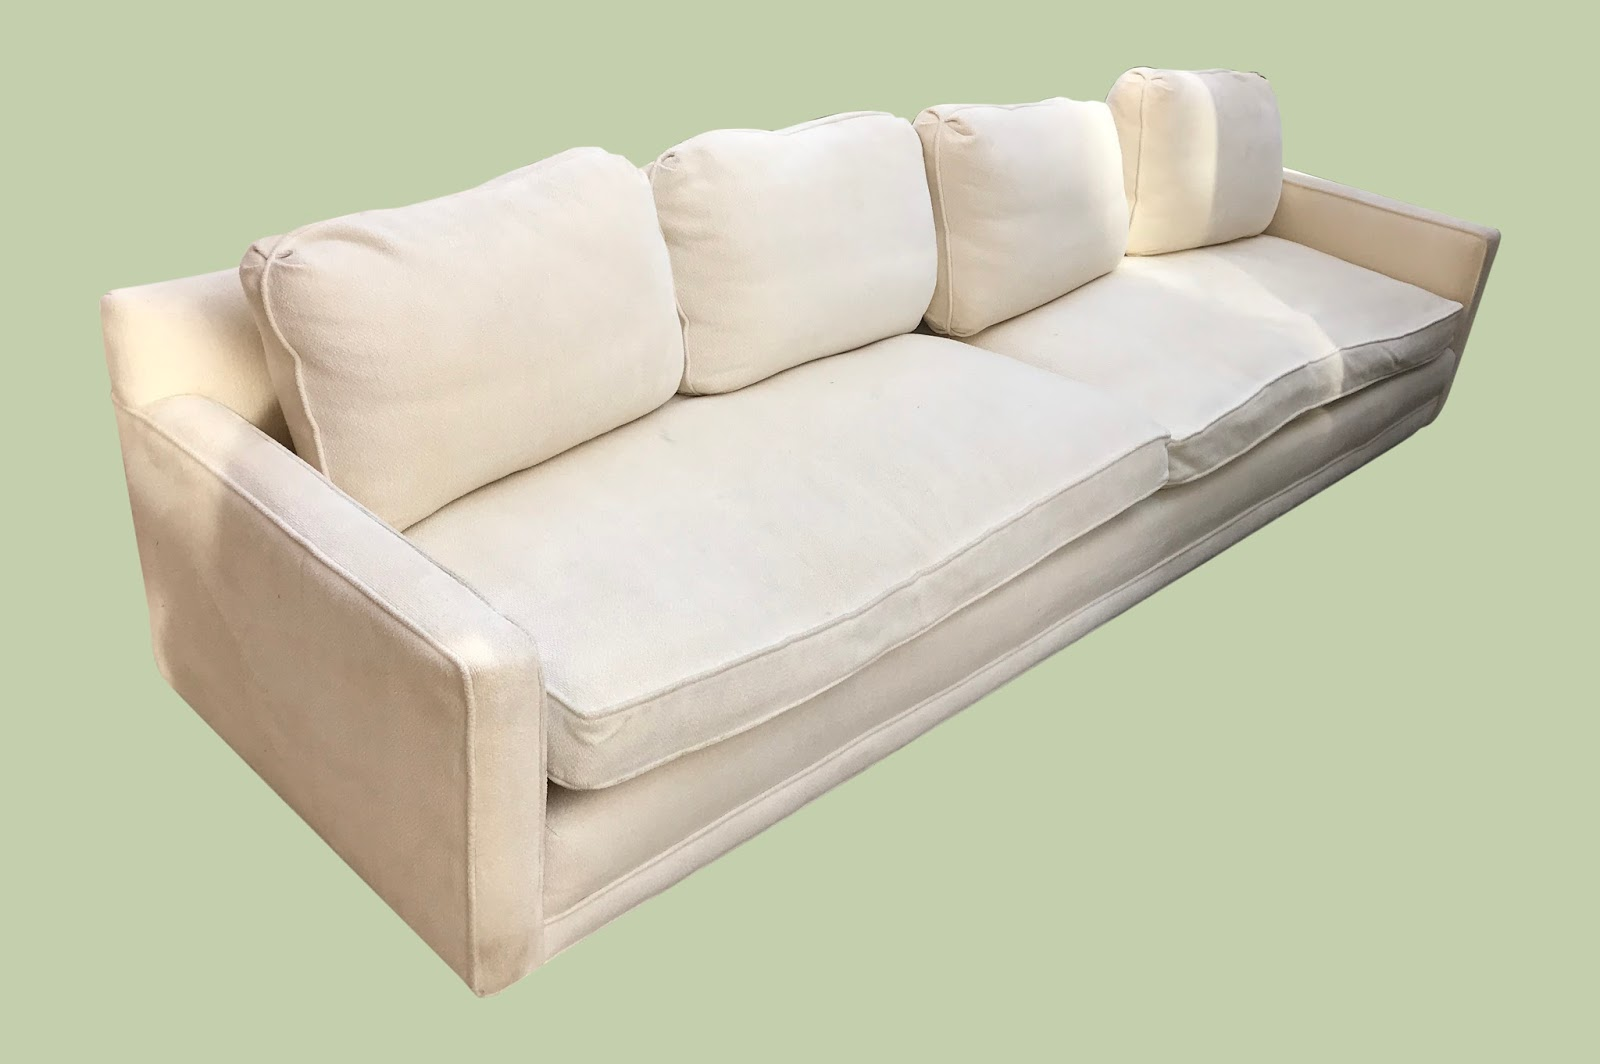 Down Wrapped Cushion Sofas Sofa Beds Uk Best Uhuru Furniture And Collectibles Mid Century With